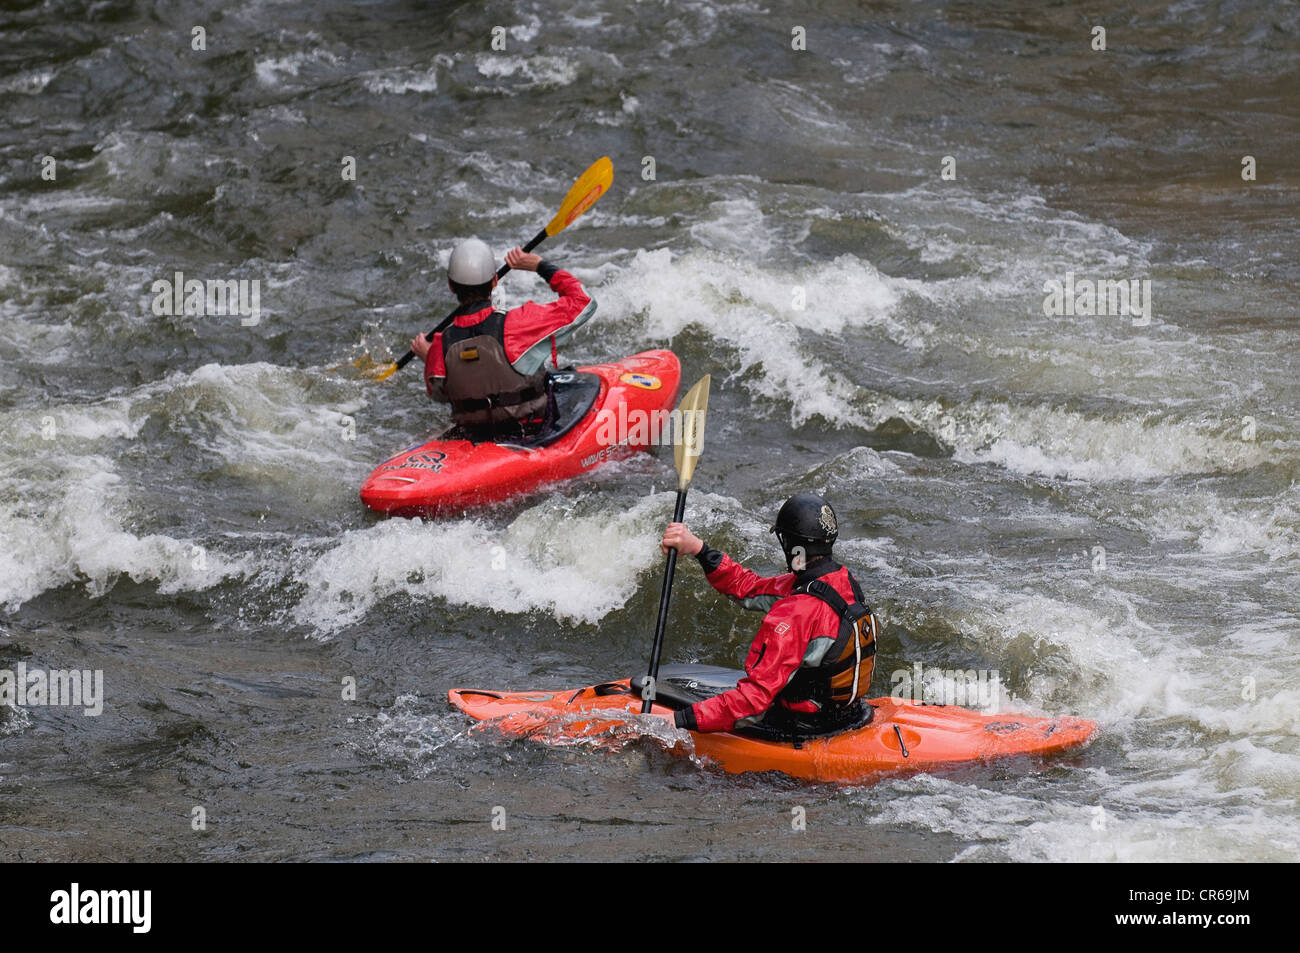 Two whitewater kayakers riding the rapids - Stock Image